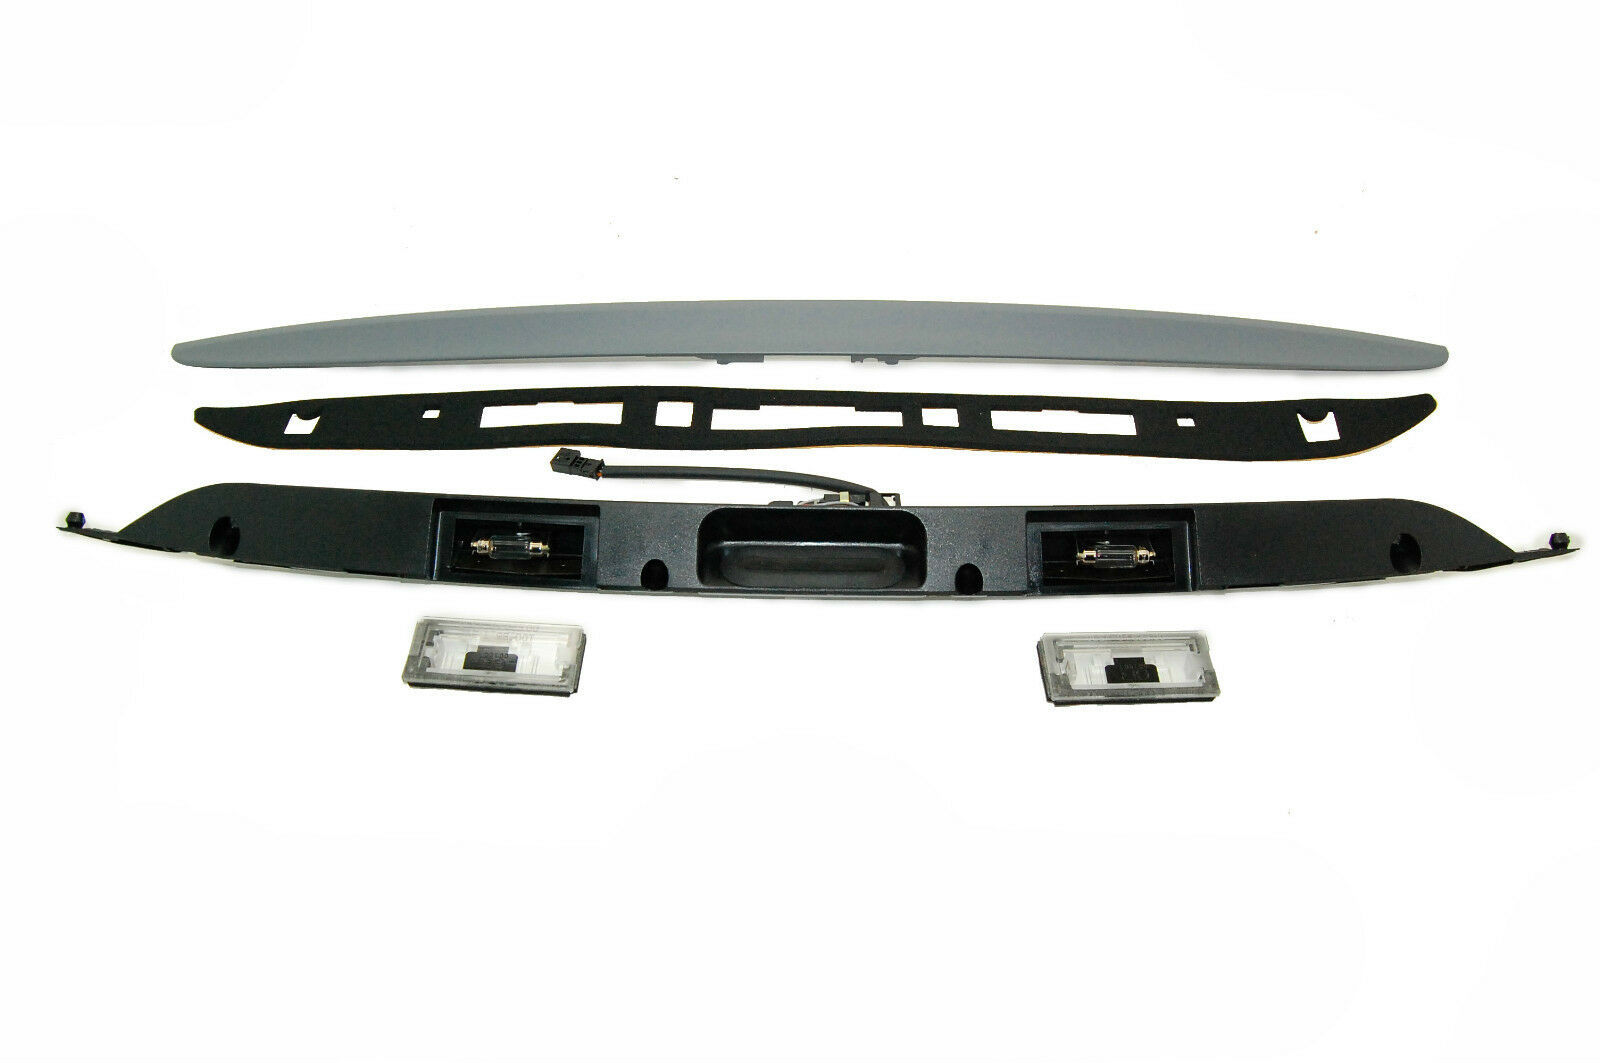 New BMW E46 touring 320i, 328i, 330i Trunk Lid Grip With Key Button 51137170963 - $118.79